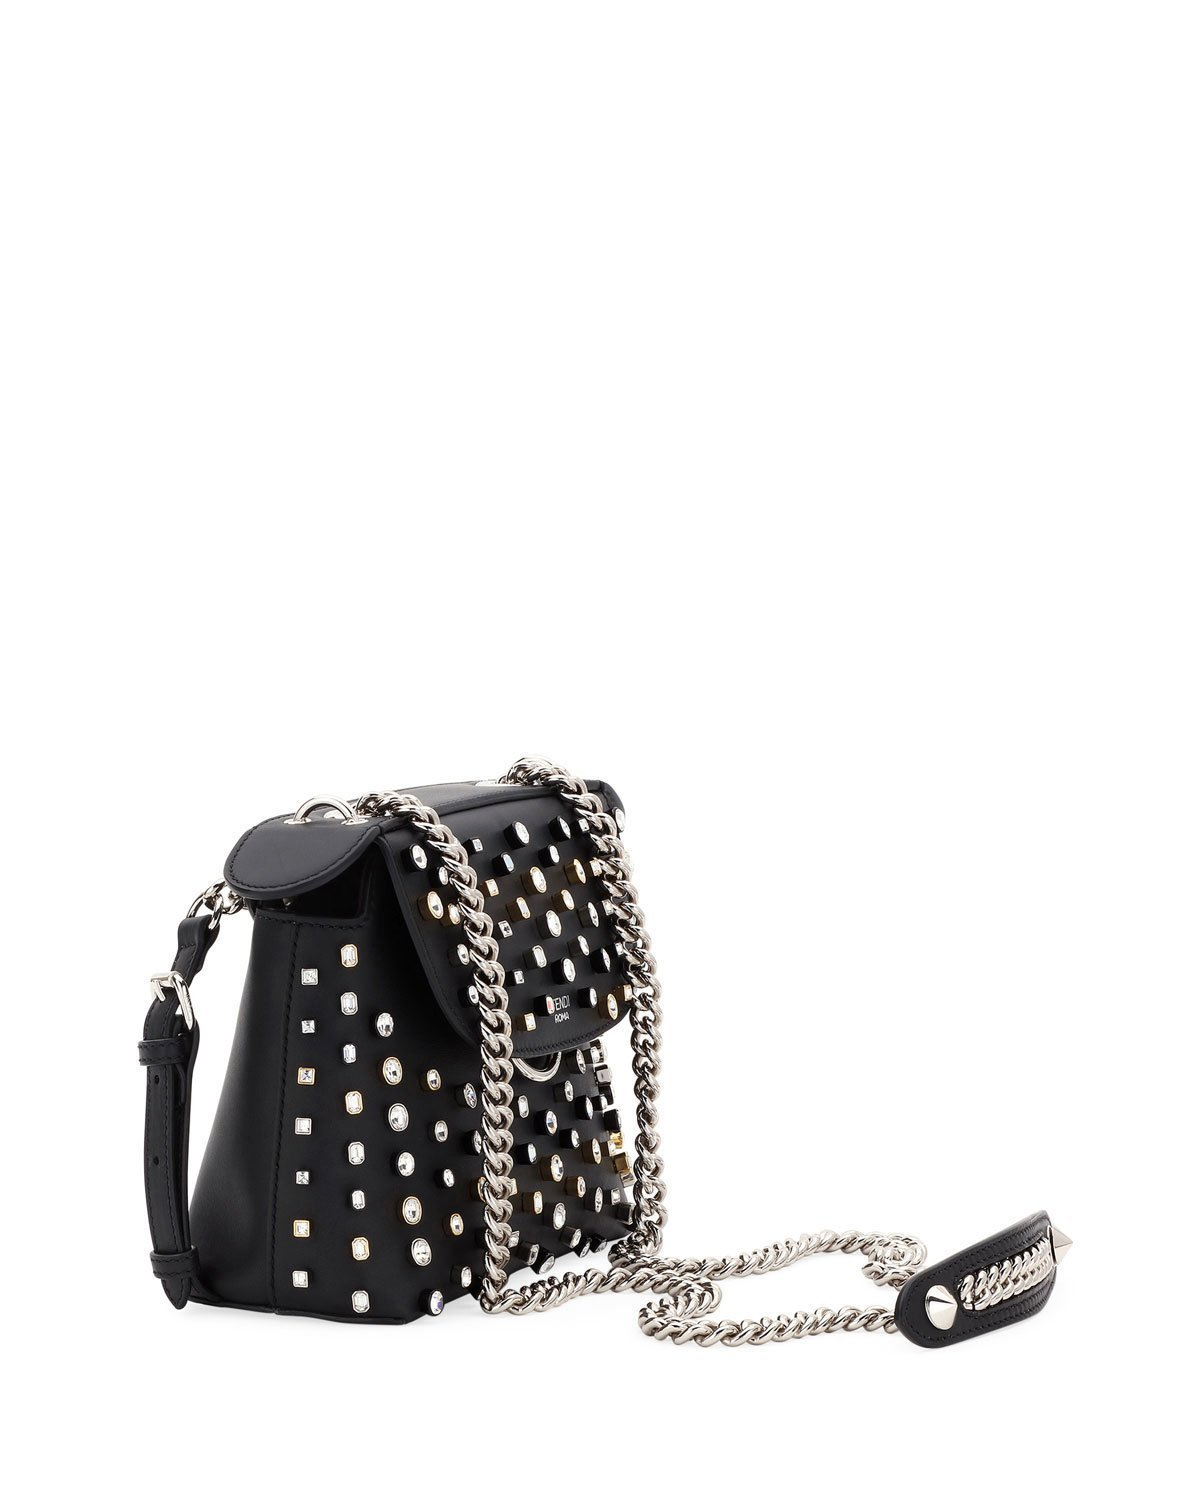 d37c017ad3 Fendi Crystal-Studded Black Leather Mini Backpack Cross-body Bag ...